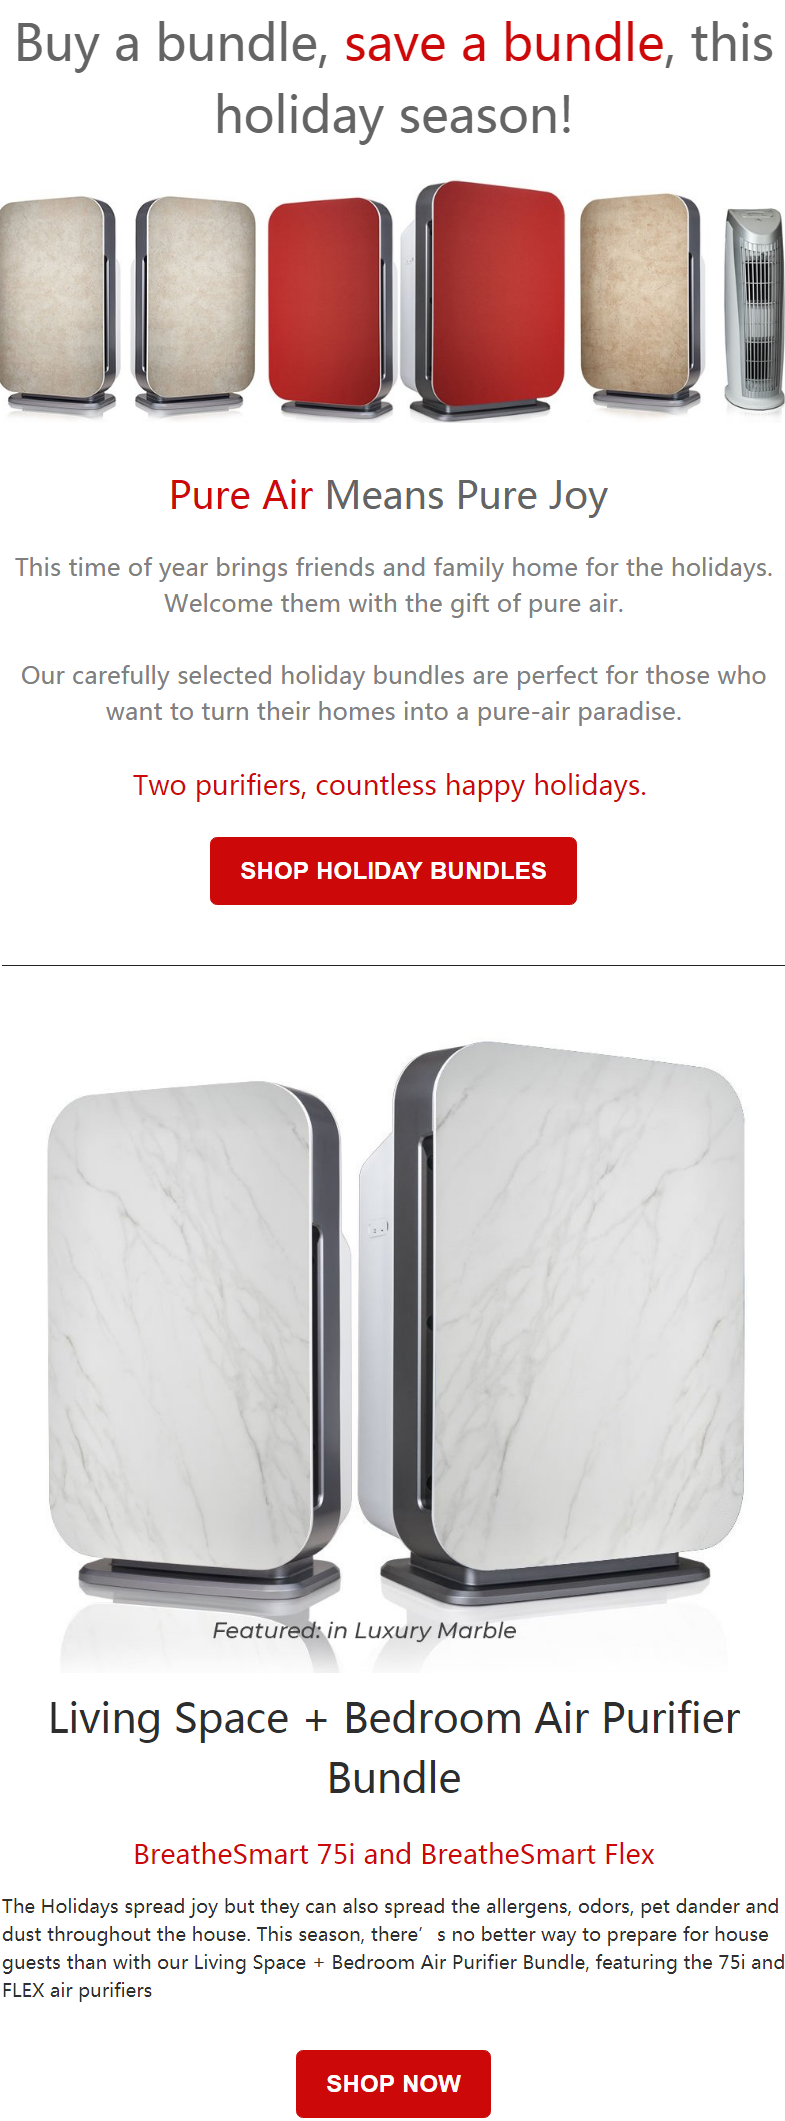 This time of year brings friends and family home for the holidays. Welcome them with the gift of pur...